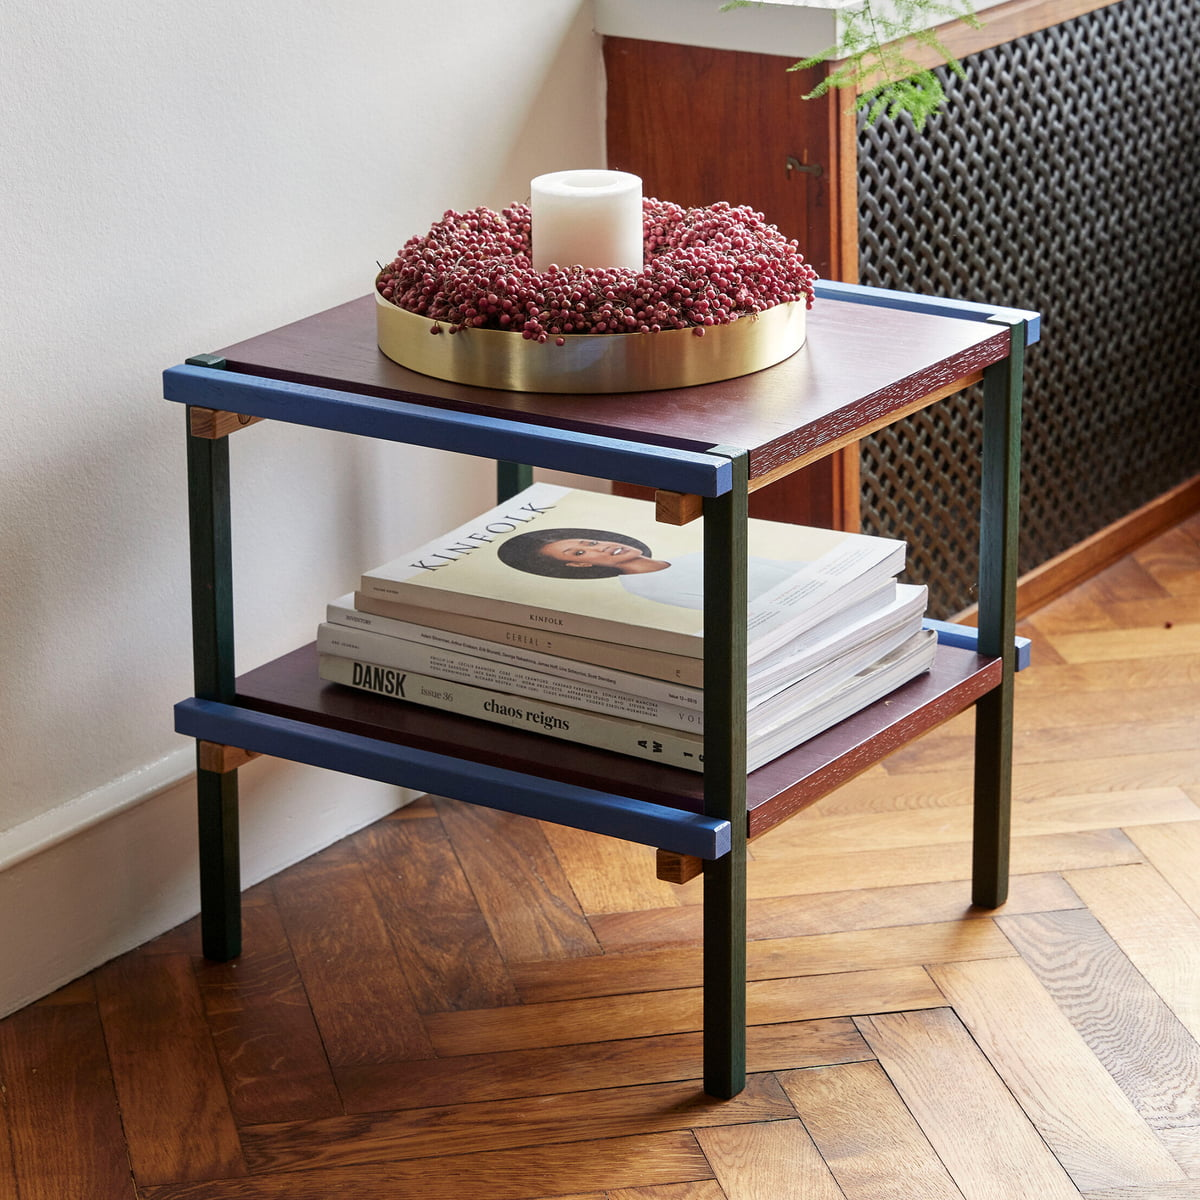 https//www.connox.com/categories/furniture/tables/side tables/fiam ...